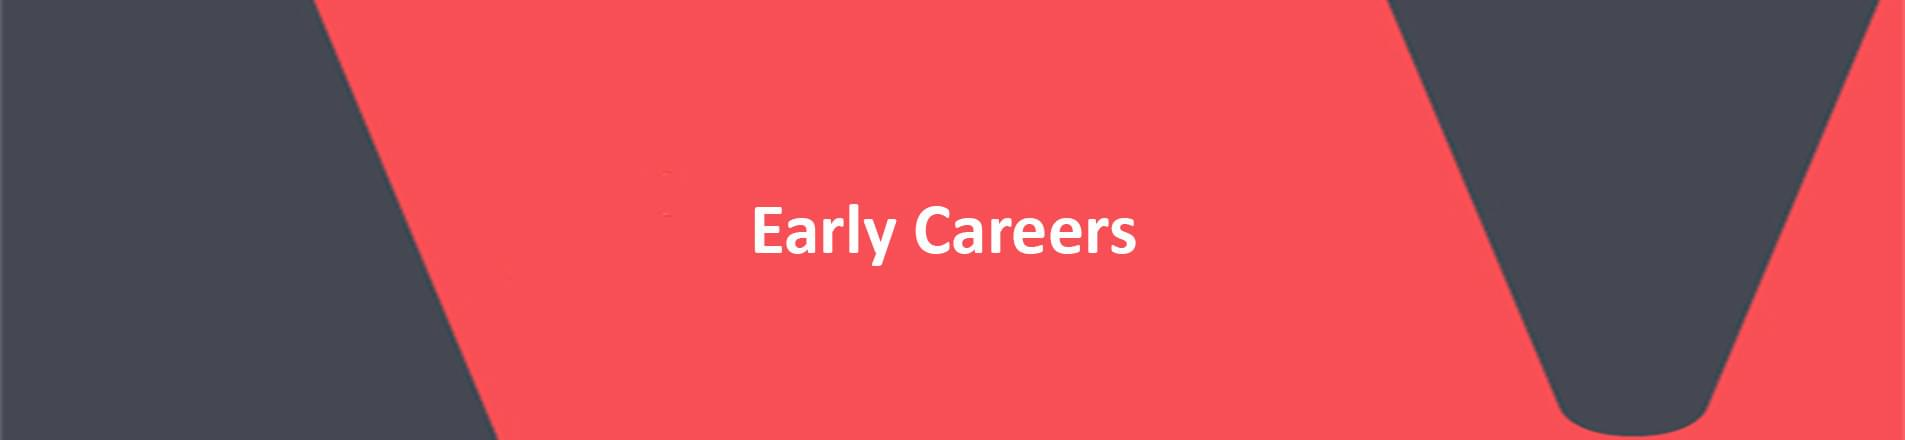 The title 'Early Careers' with the red VERCIDA background.